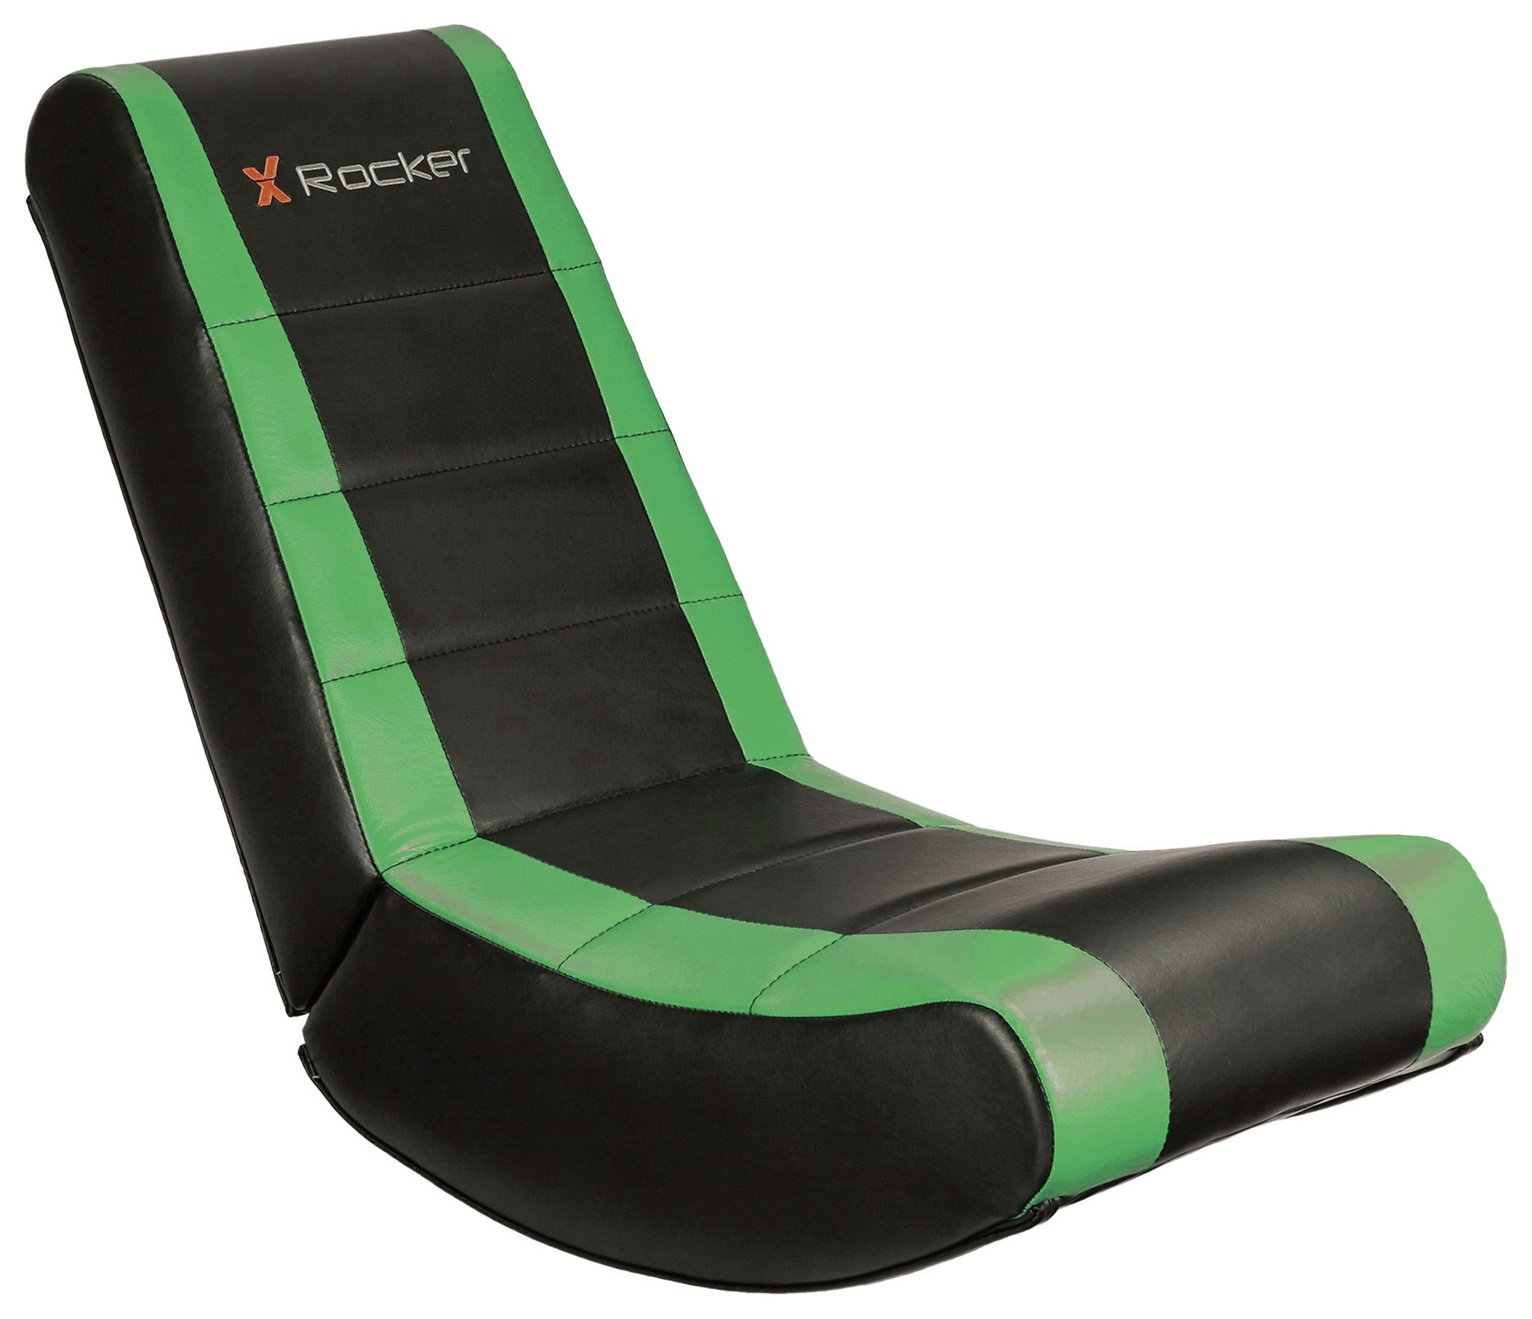 X Rocker Curve Gaming Chair